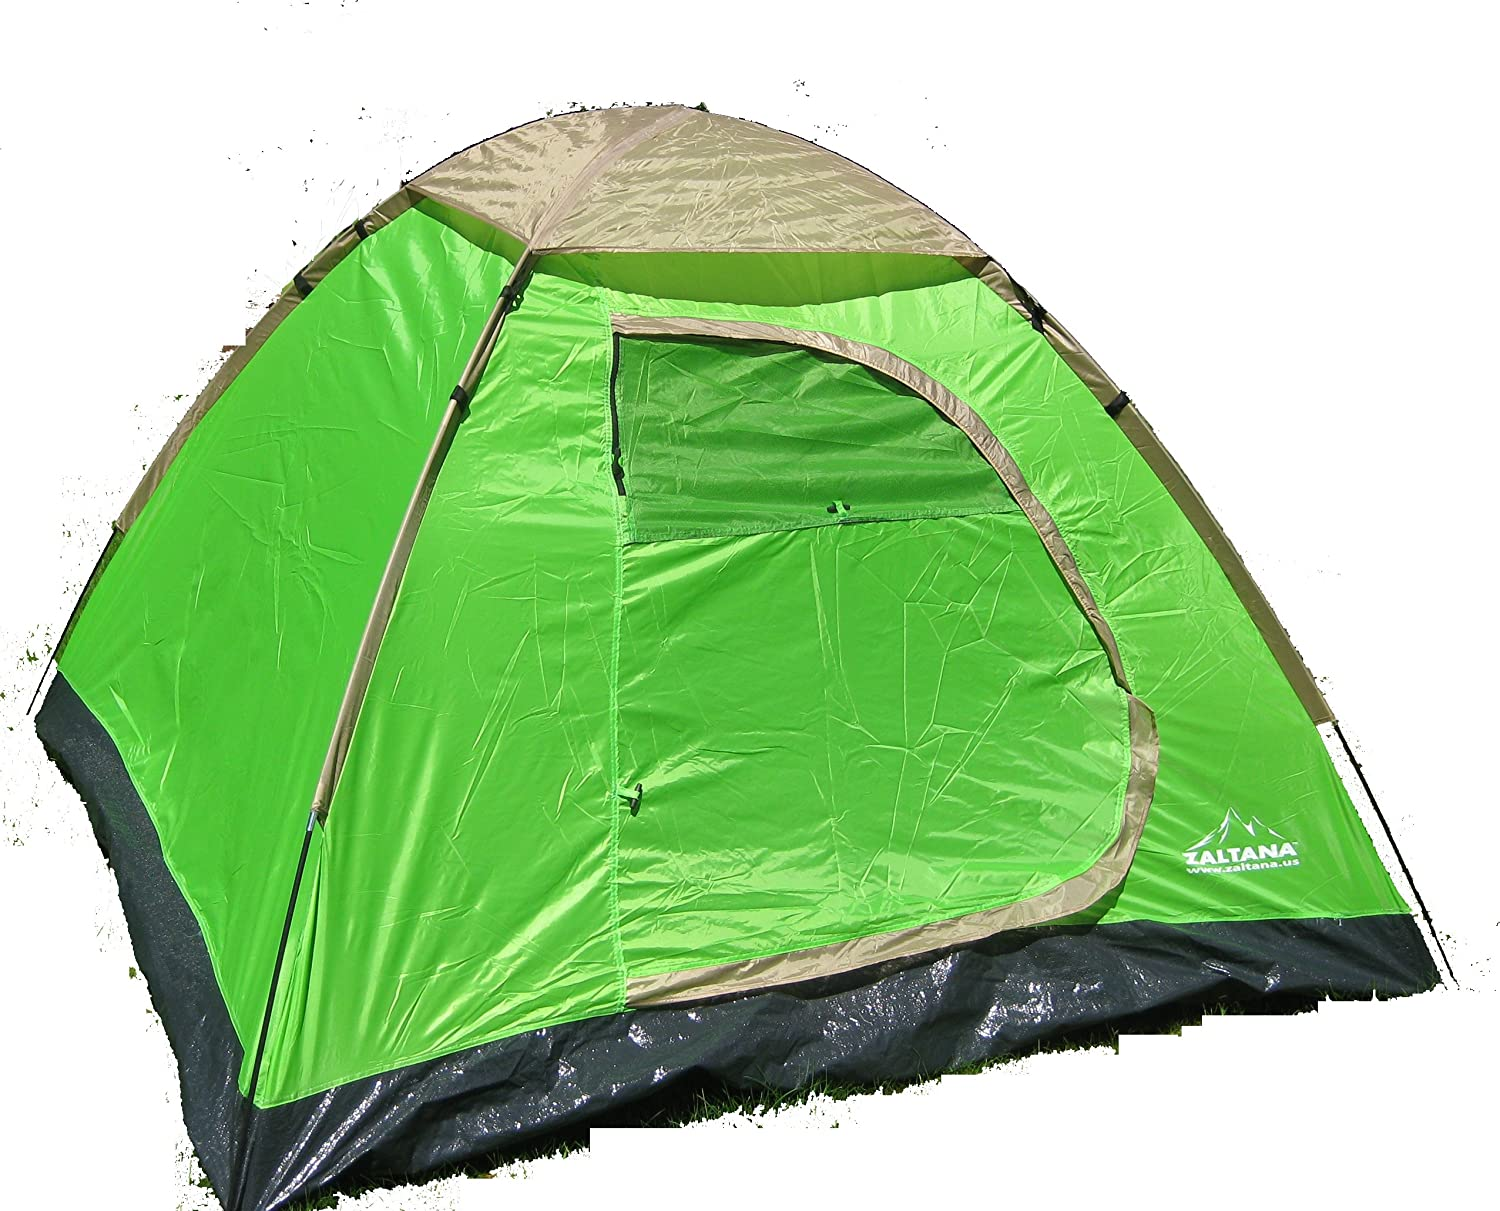 Outbound Tent Instant Pop up Tent for Camping with Carry Bag and Rainfly Perfect for Backpacking or The Beach Dome Cabin Tents, 5, 6, 8, and 10-Person